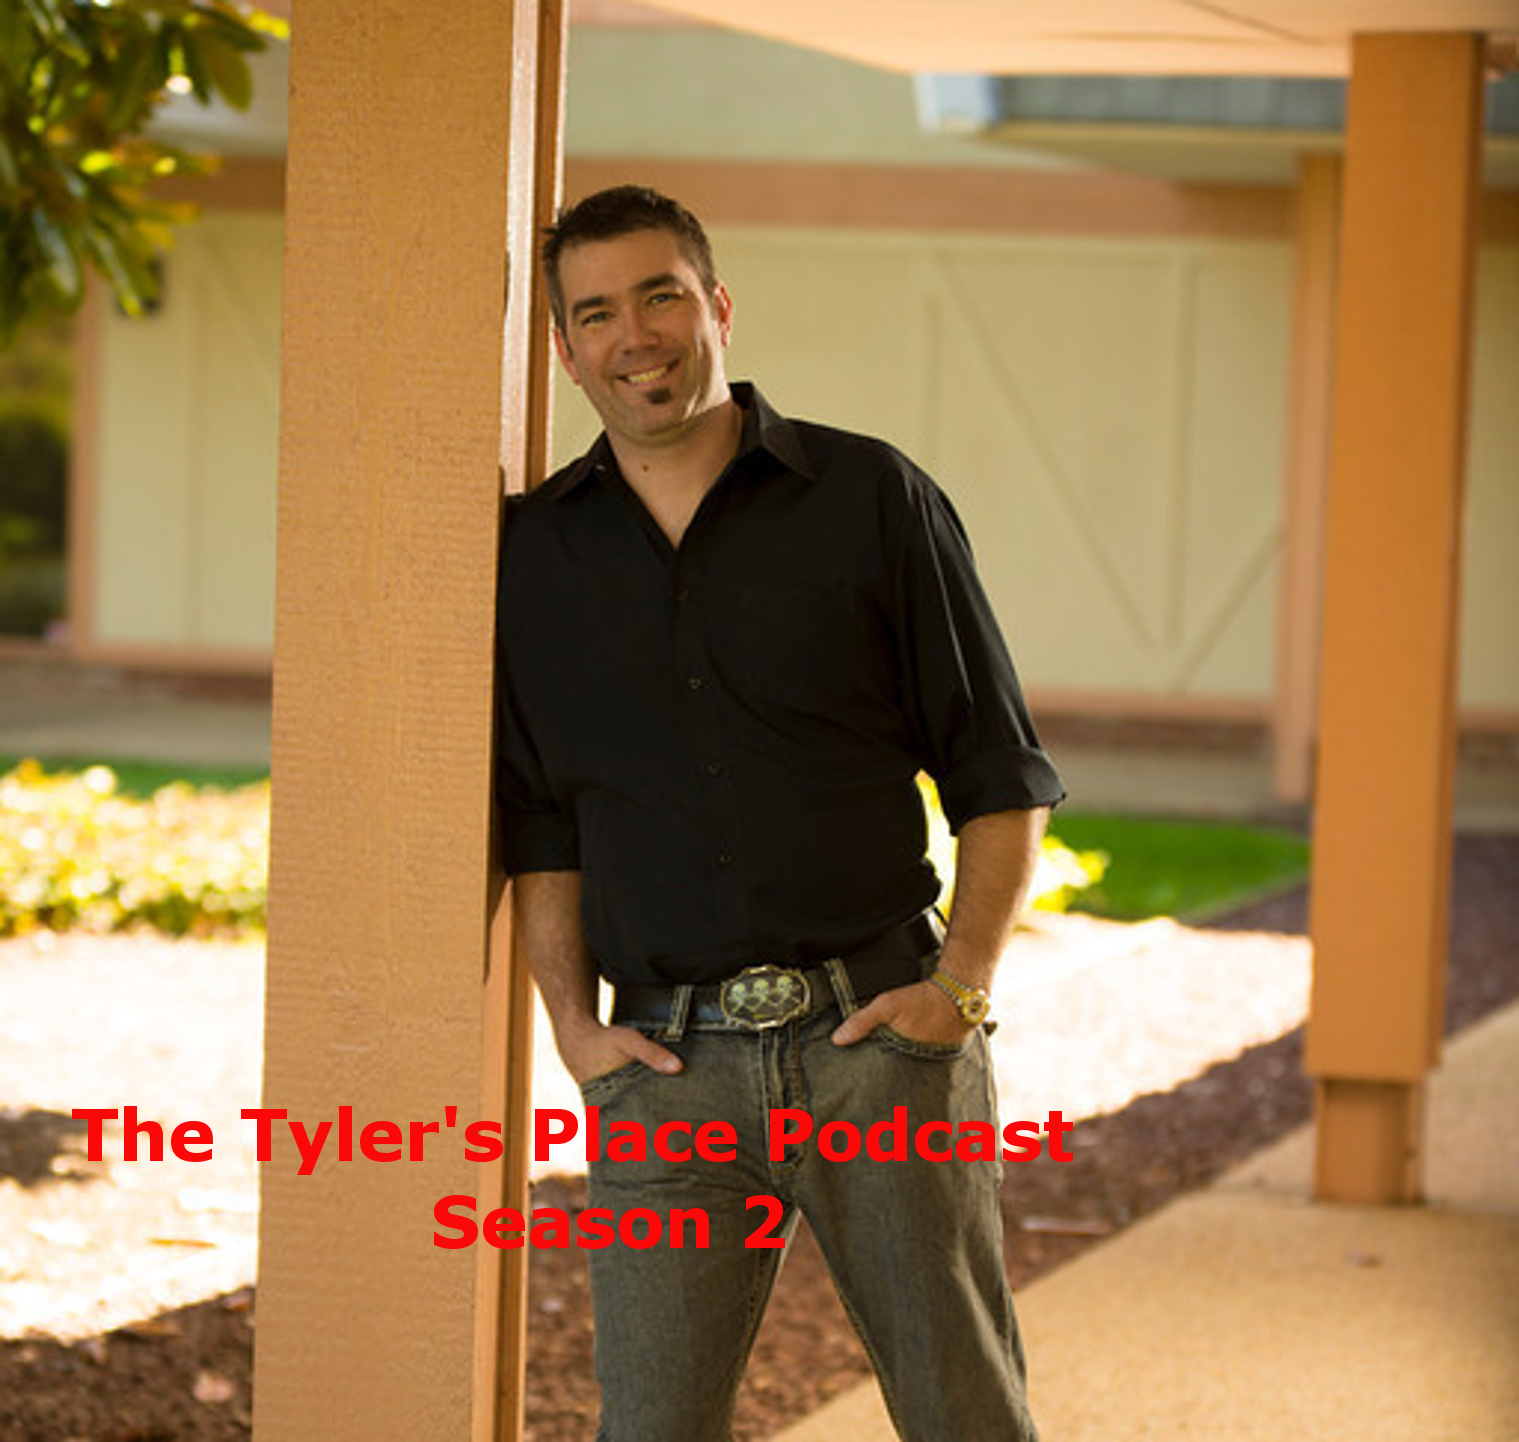 The Tyler's Place Podcast, Season 2